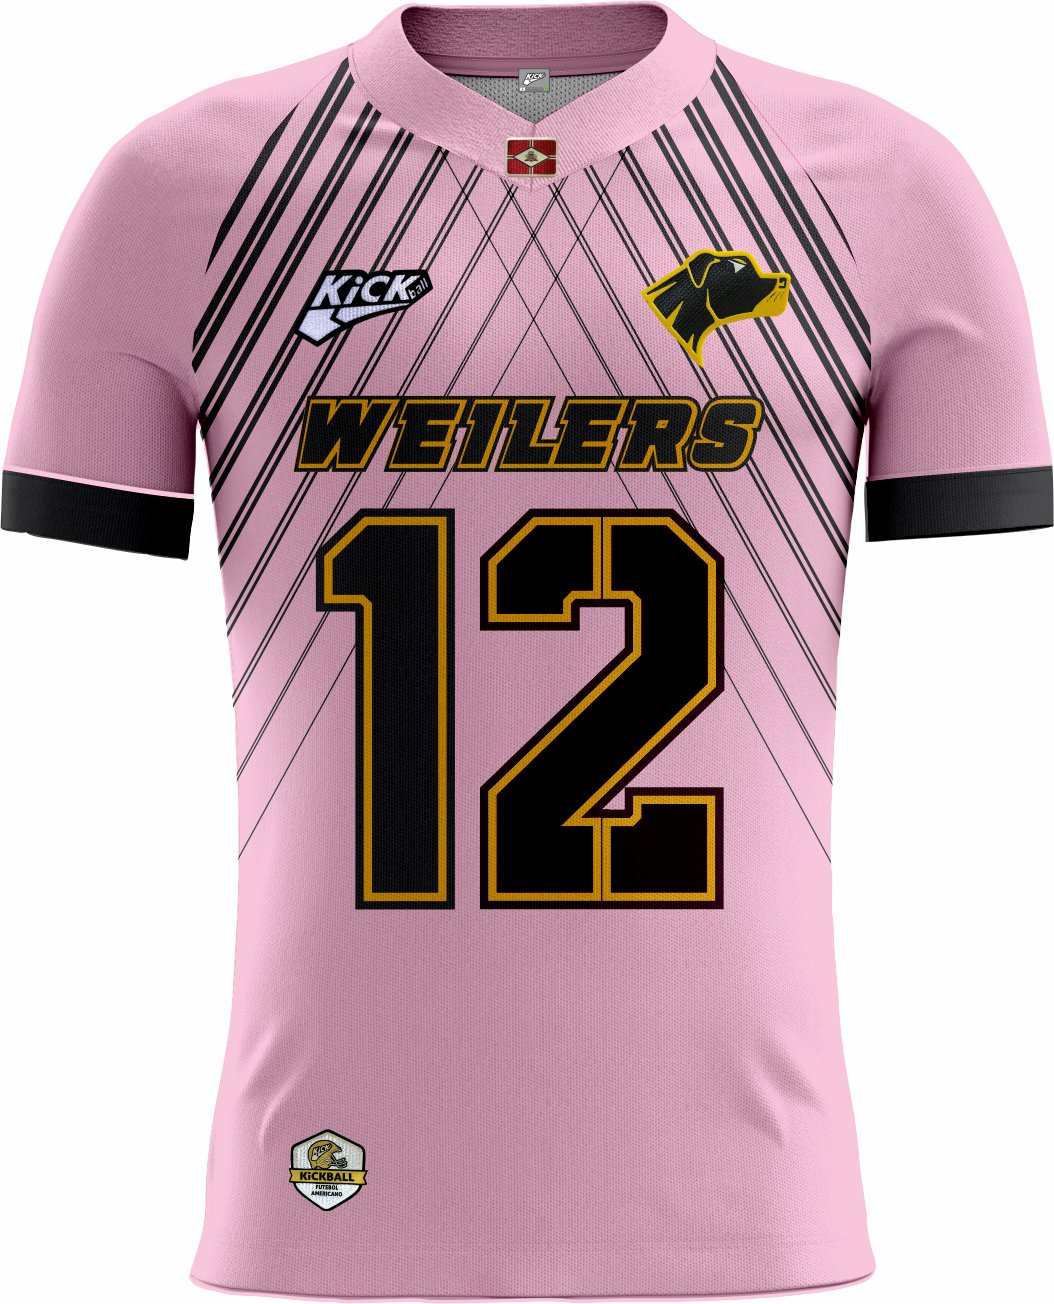 Camisa Of.  Rio Preto Weilers Tryout Masc. Outubro Rosa